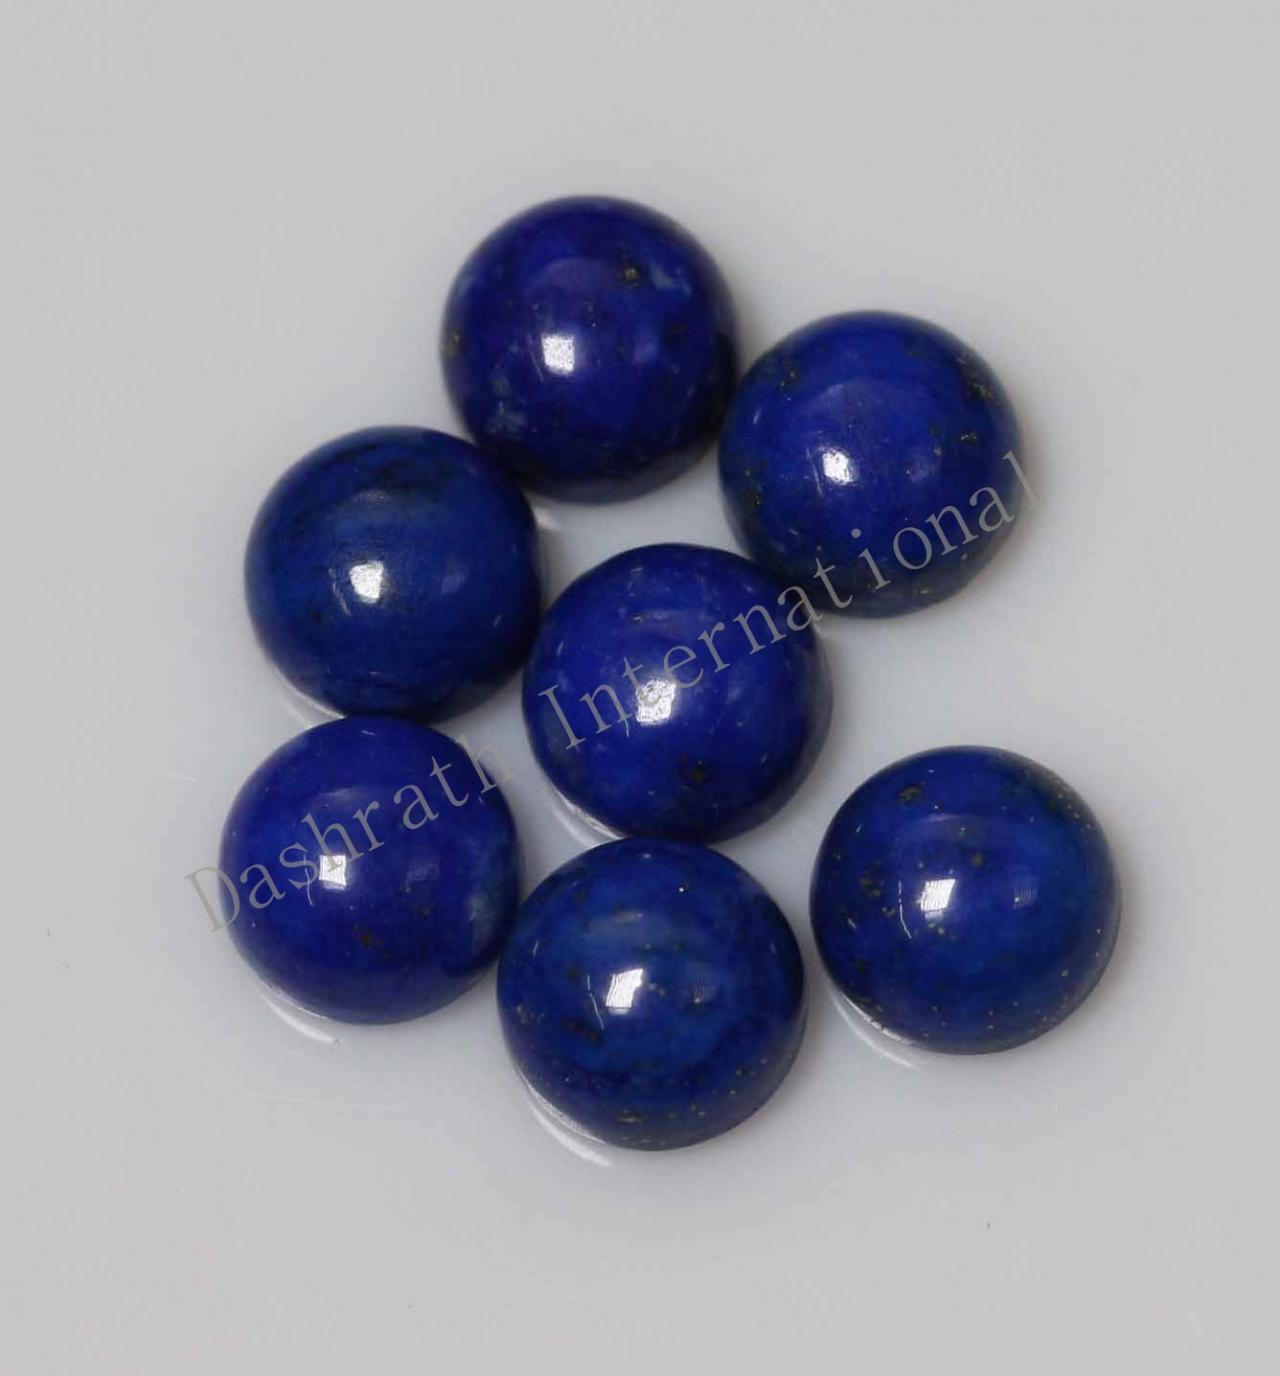 16mm Natural Lapis Lapuli Cabochon Round 5 Pieces Lot Blue Color Top Quality Loose Gemstone